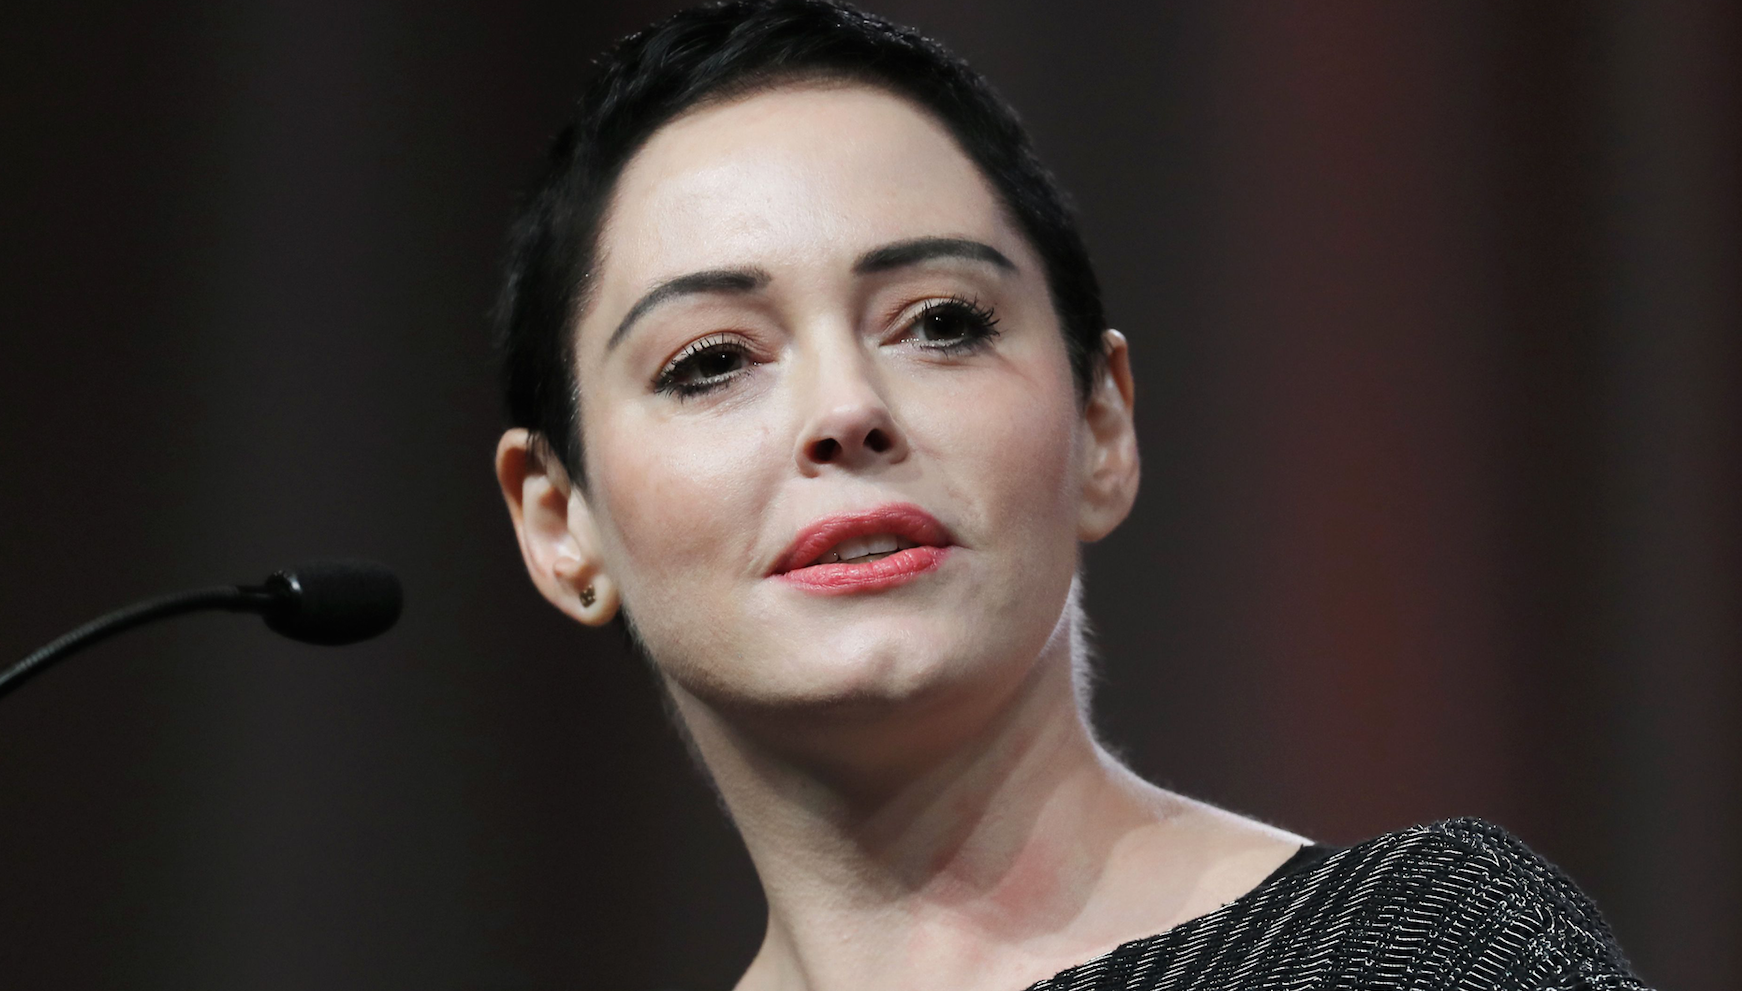 Rose Mcgowan Going All The Way